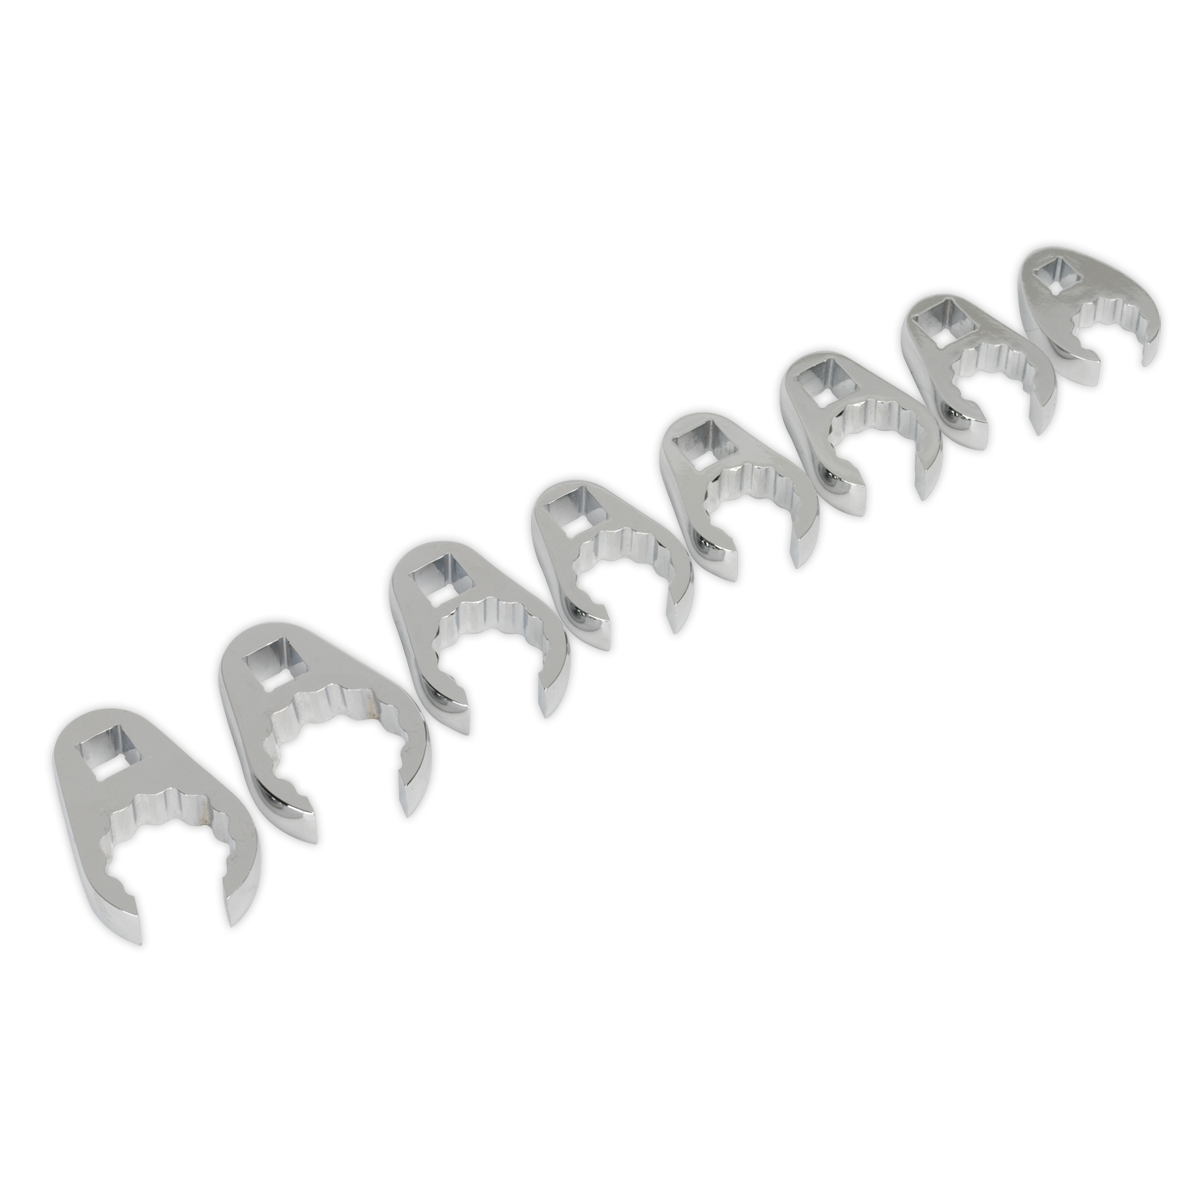 AK5981 Sealey Crow's Foot Spanner Set 8pc 1 2 Sq Drive Metric